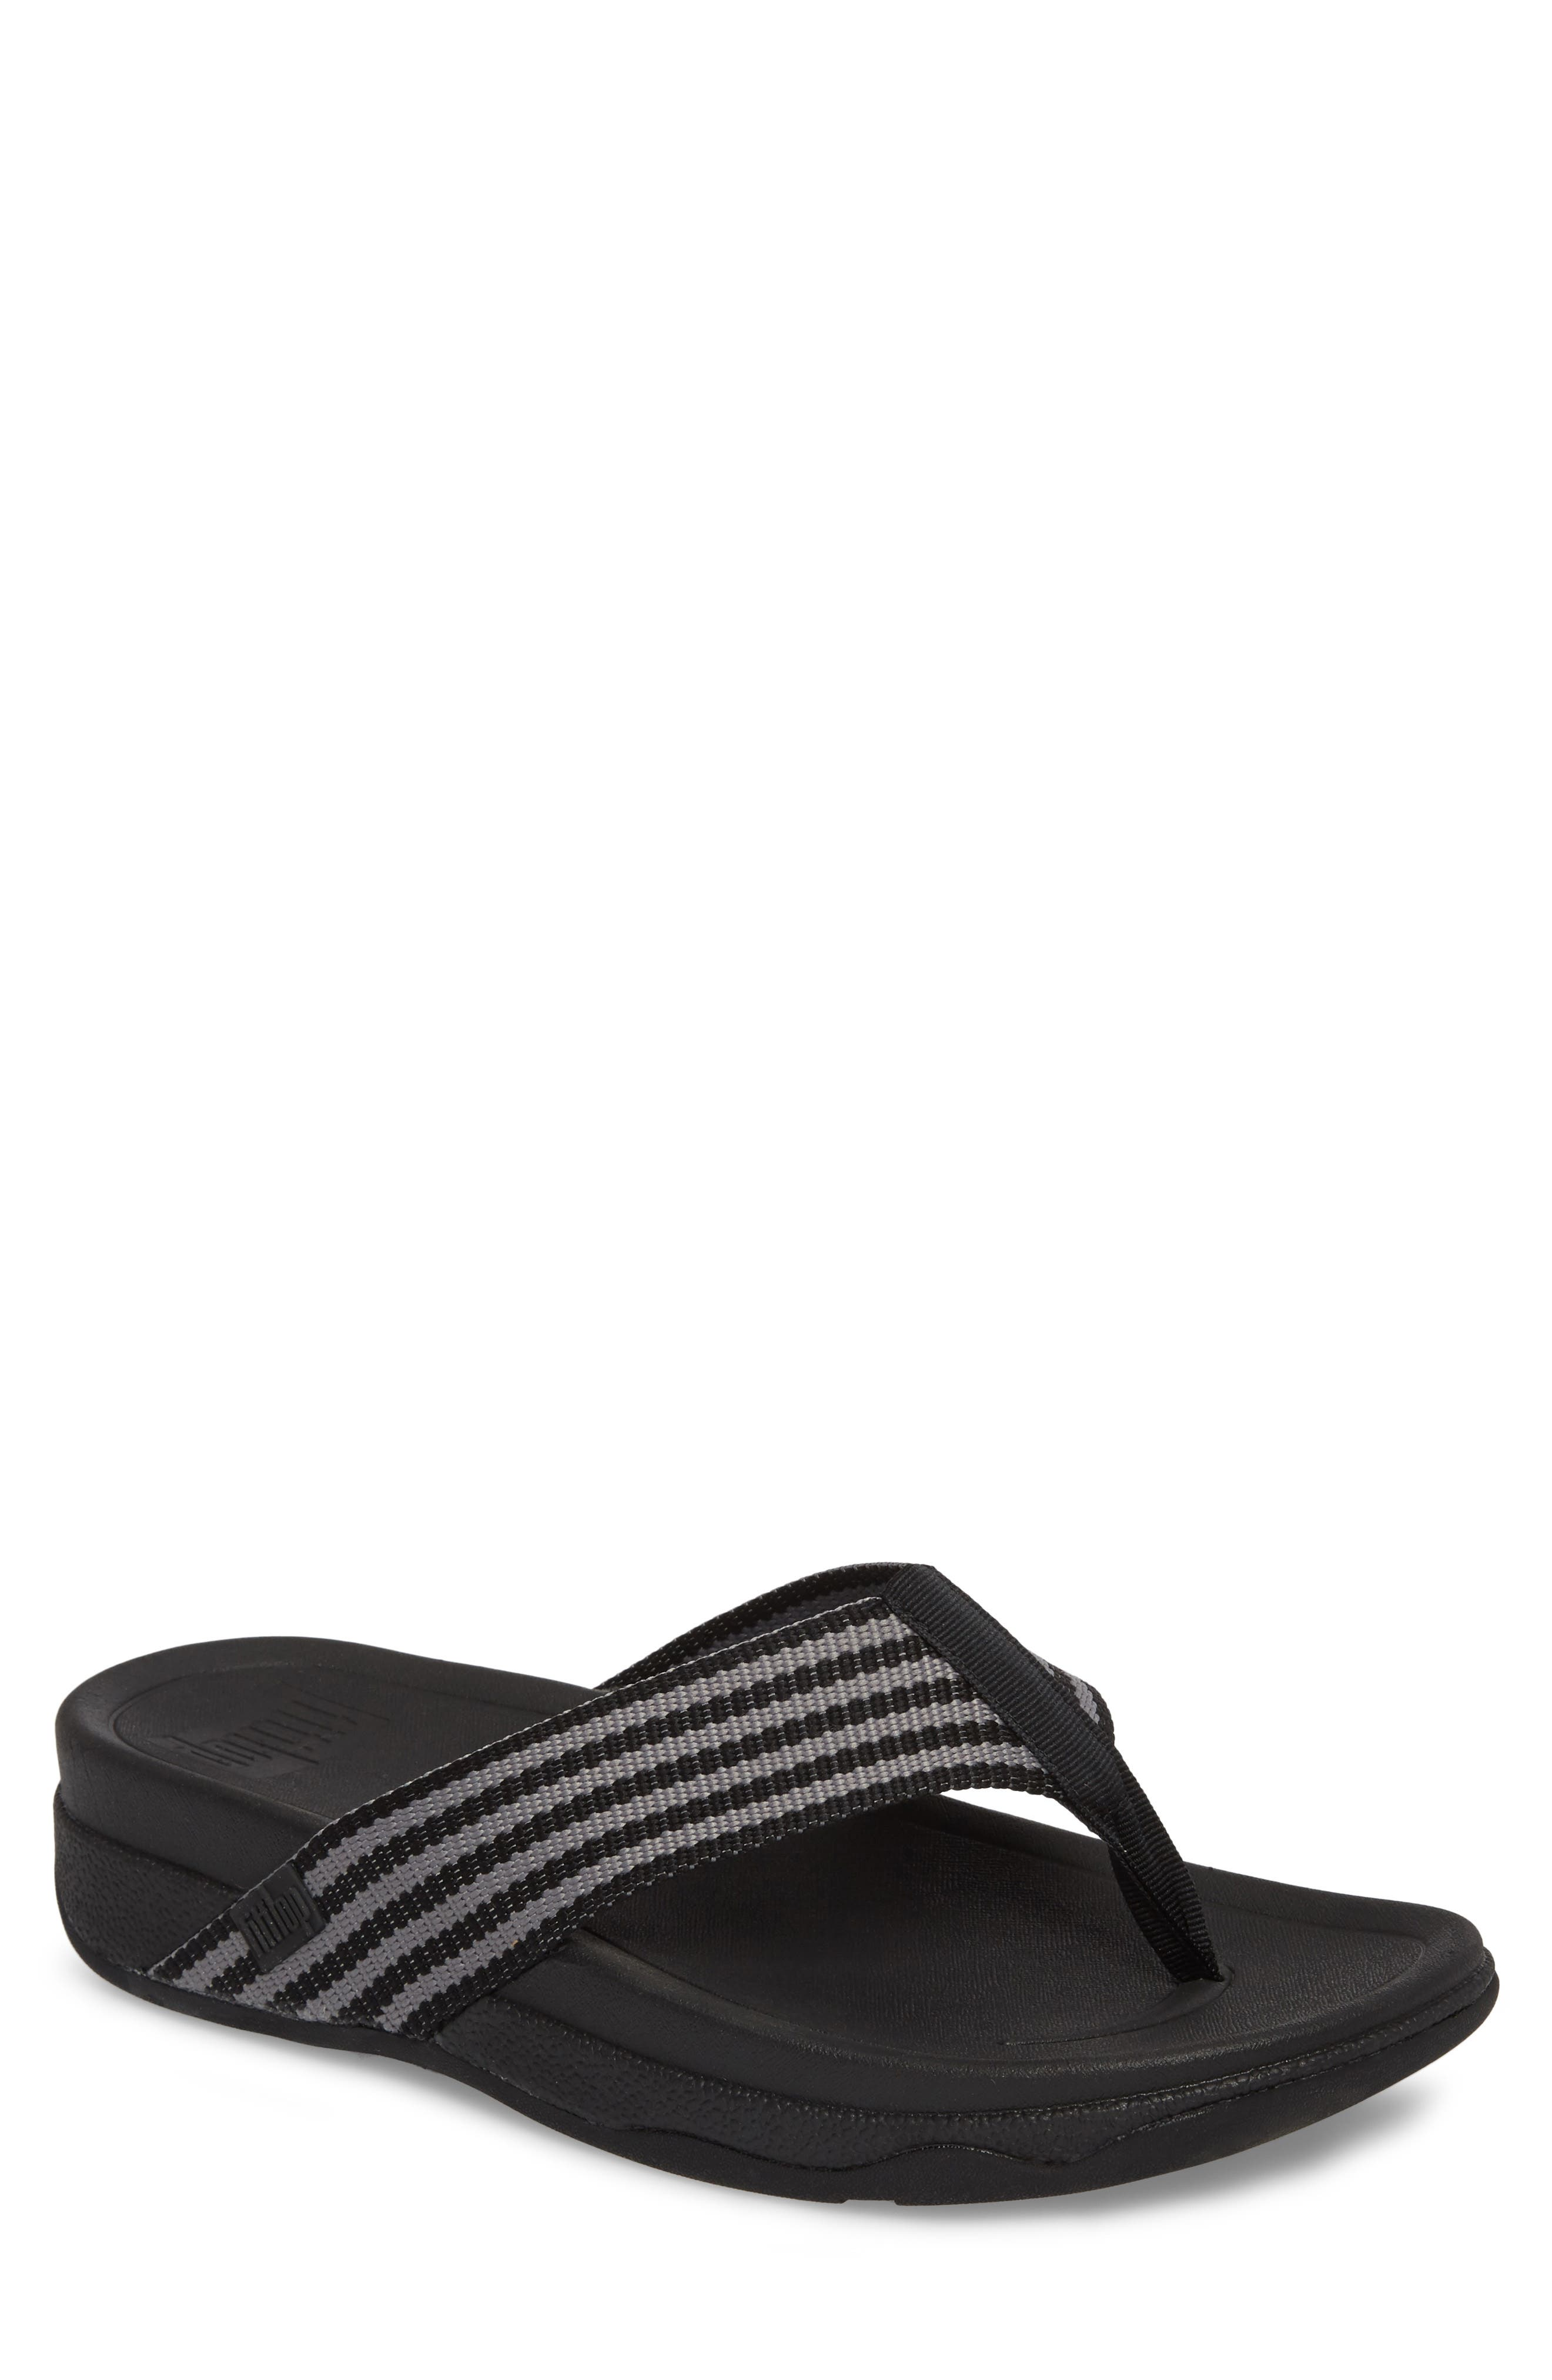 'Surfer' Flip Flop,                         Main,                         color, 005